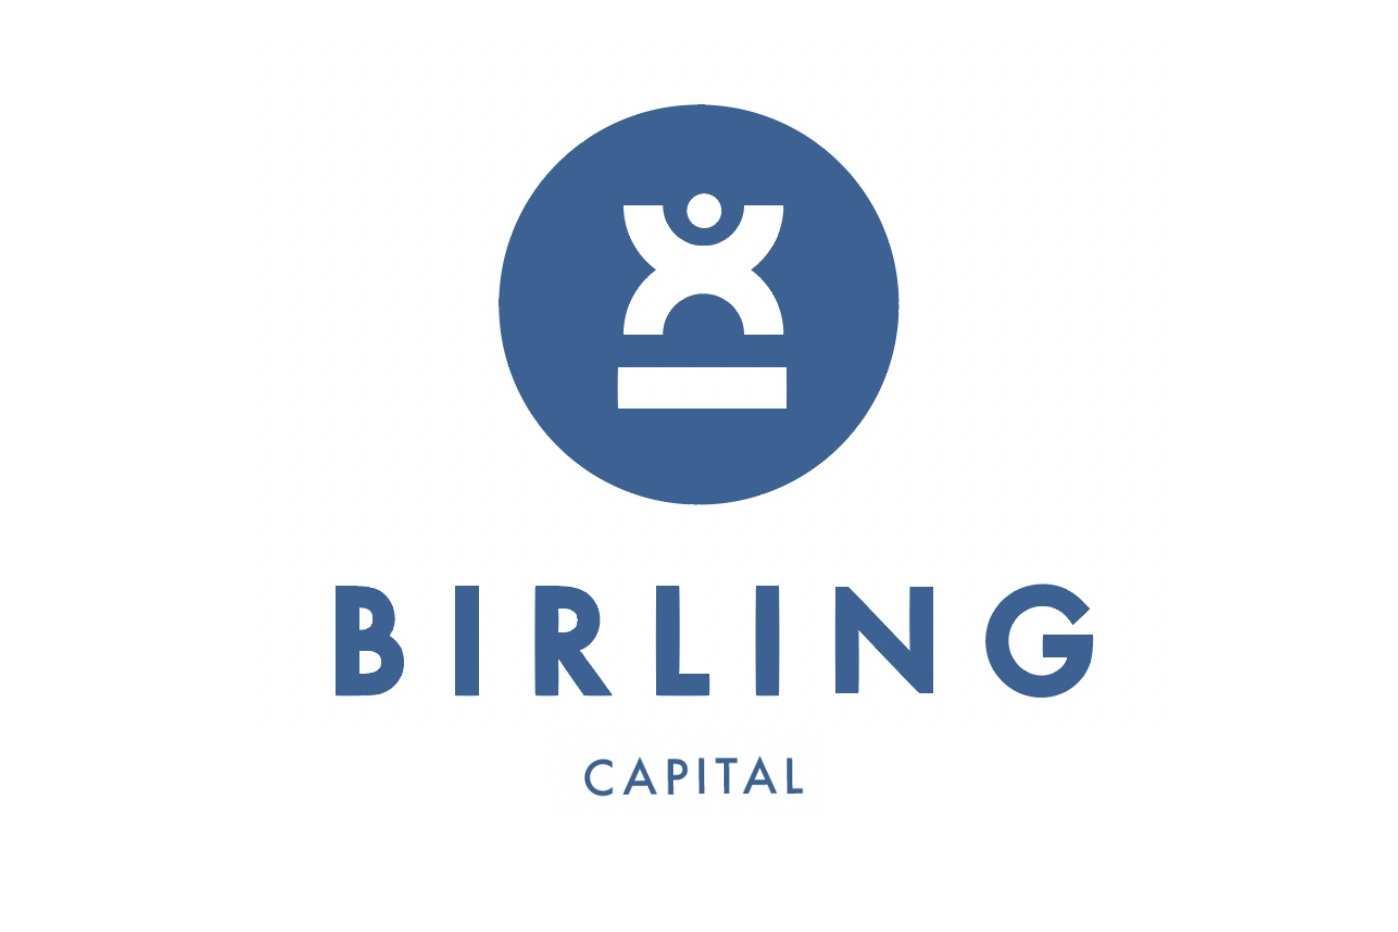 Birling Capital